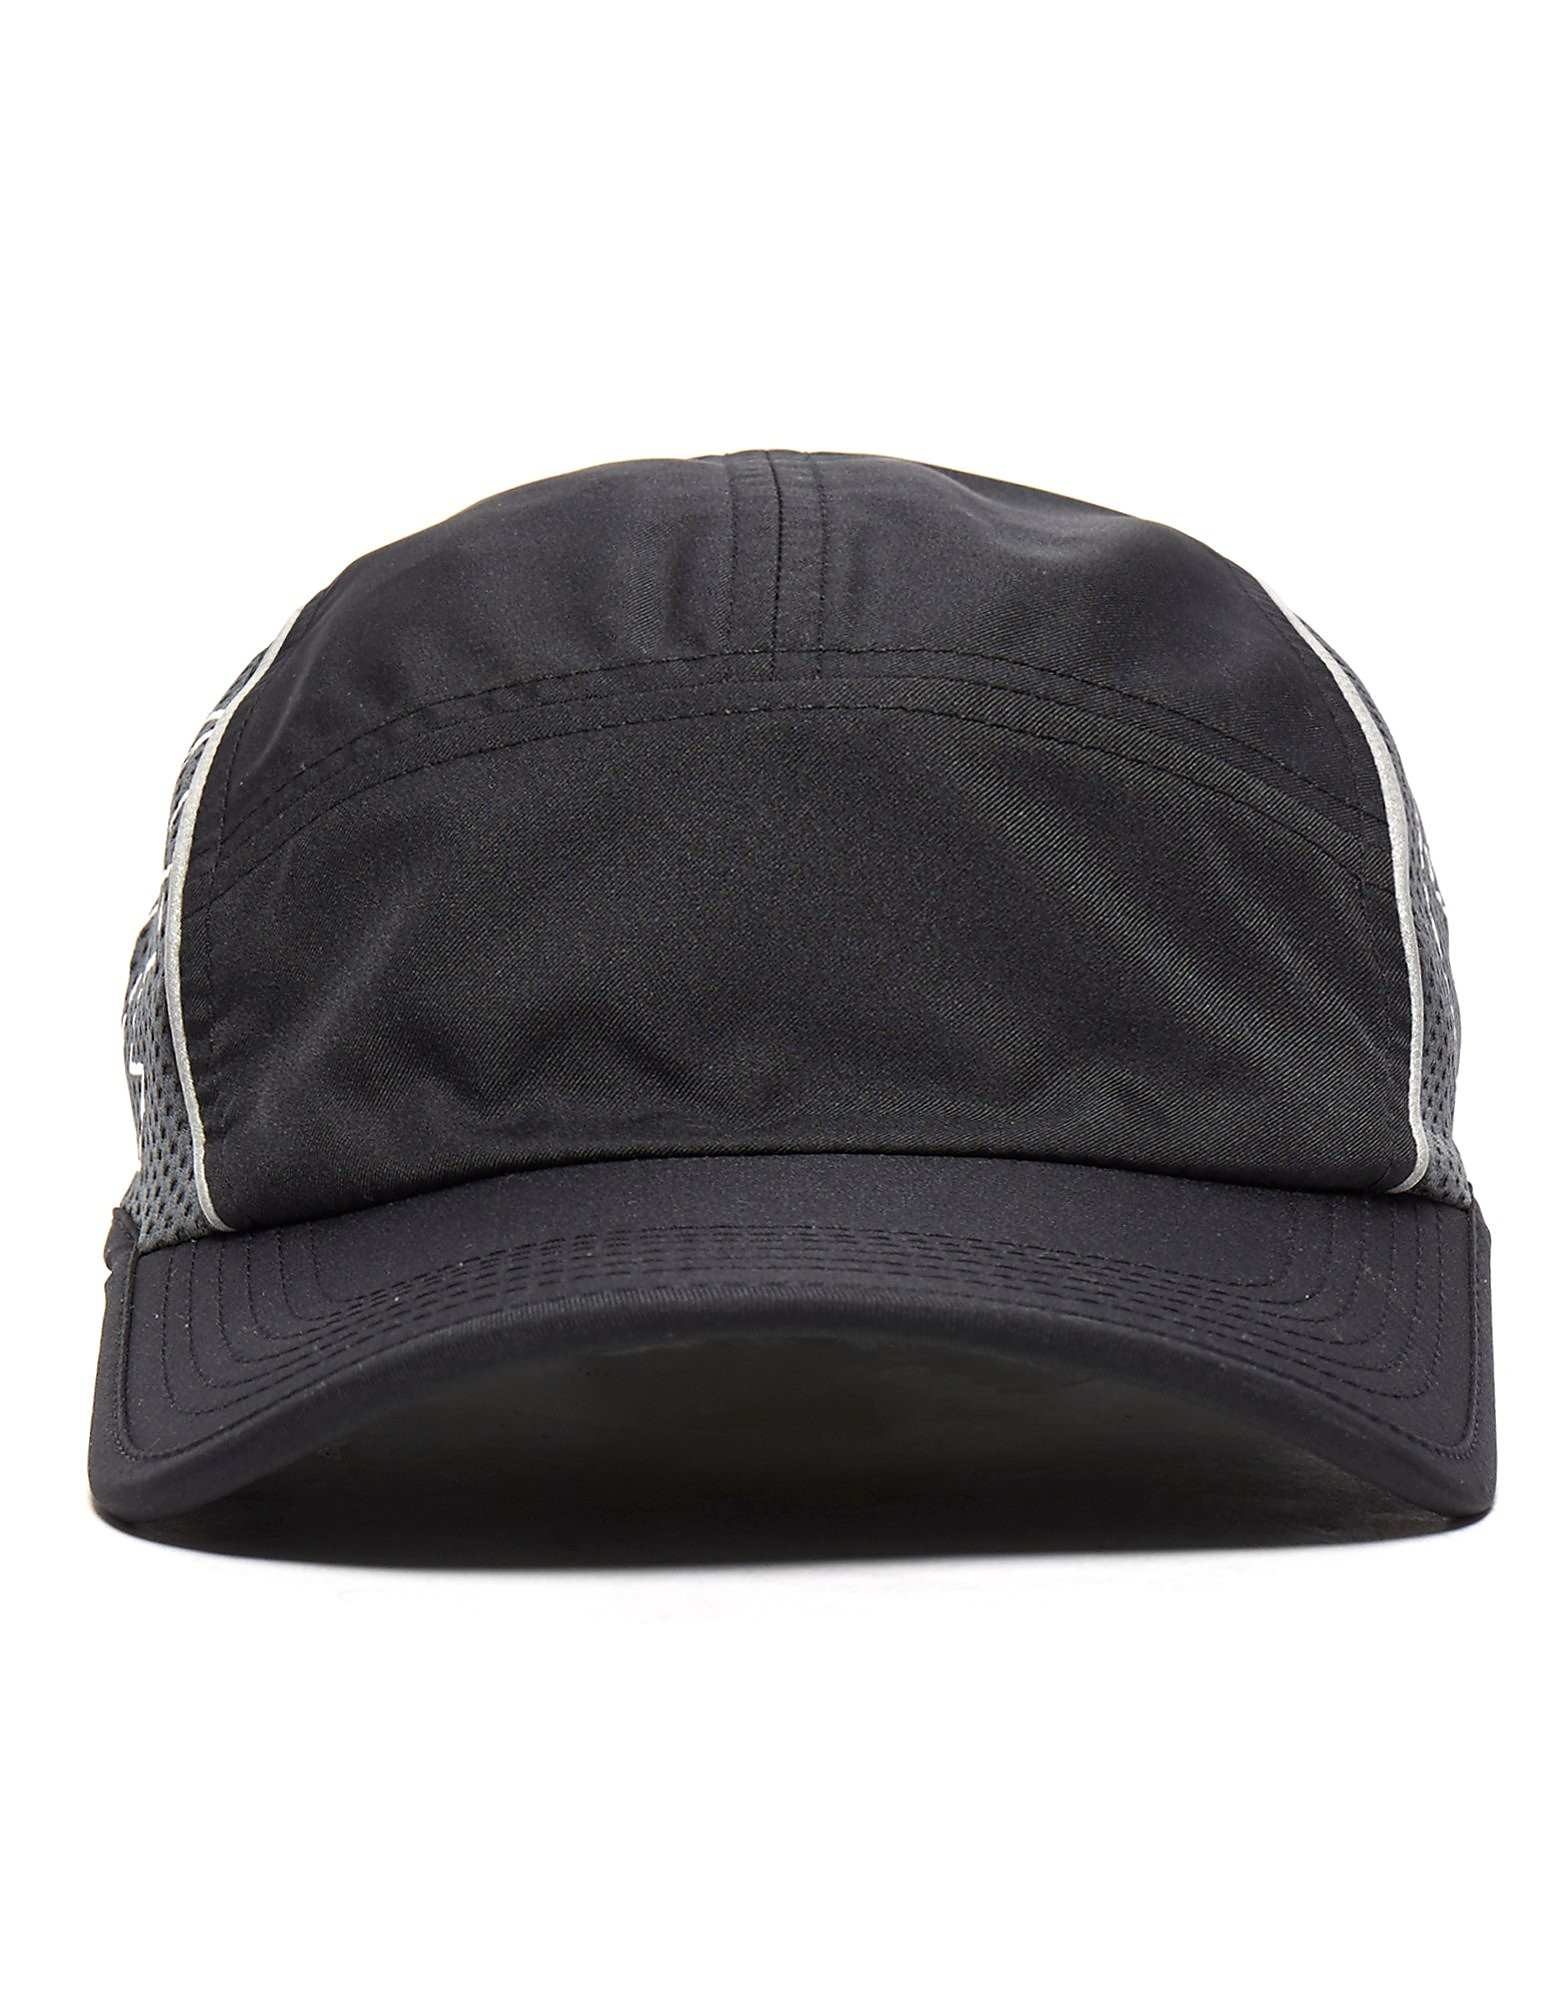 Nike Run Swoosh Curved Peak Cap